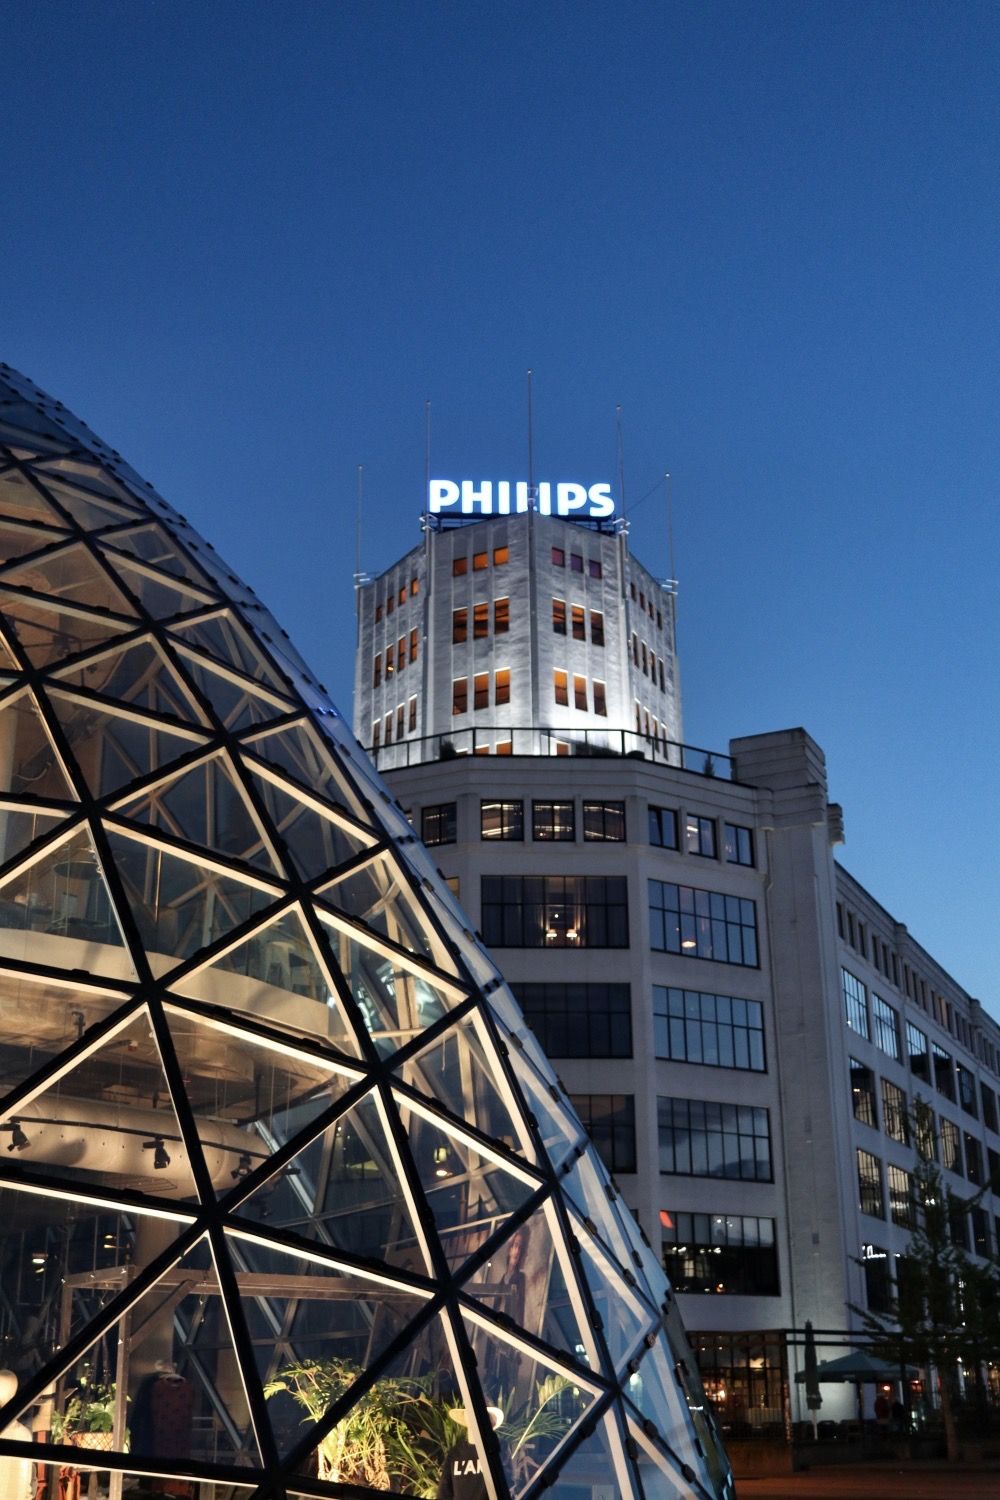 Philips Light Tower Eindhoven